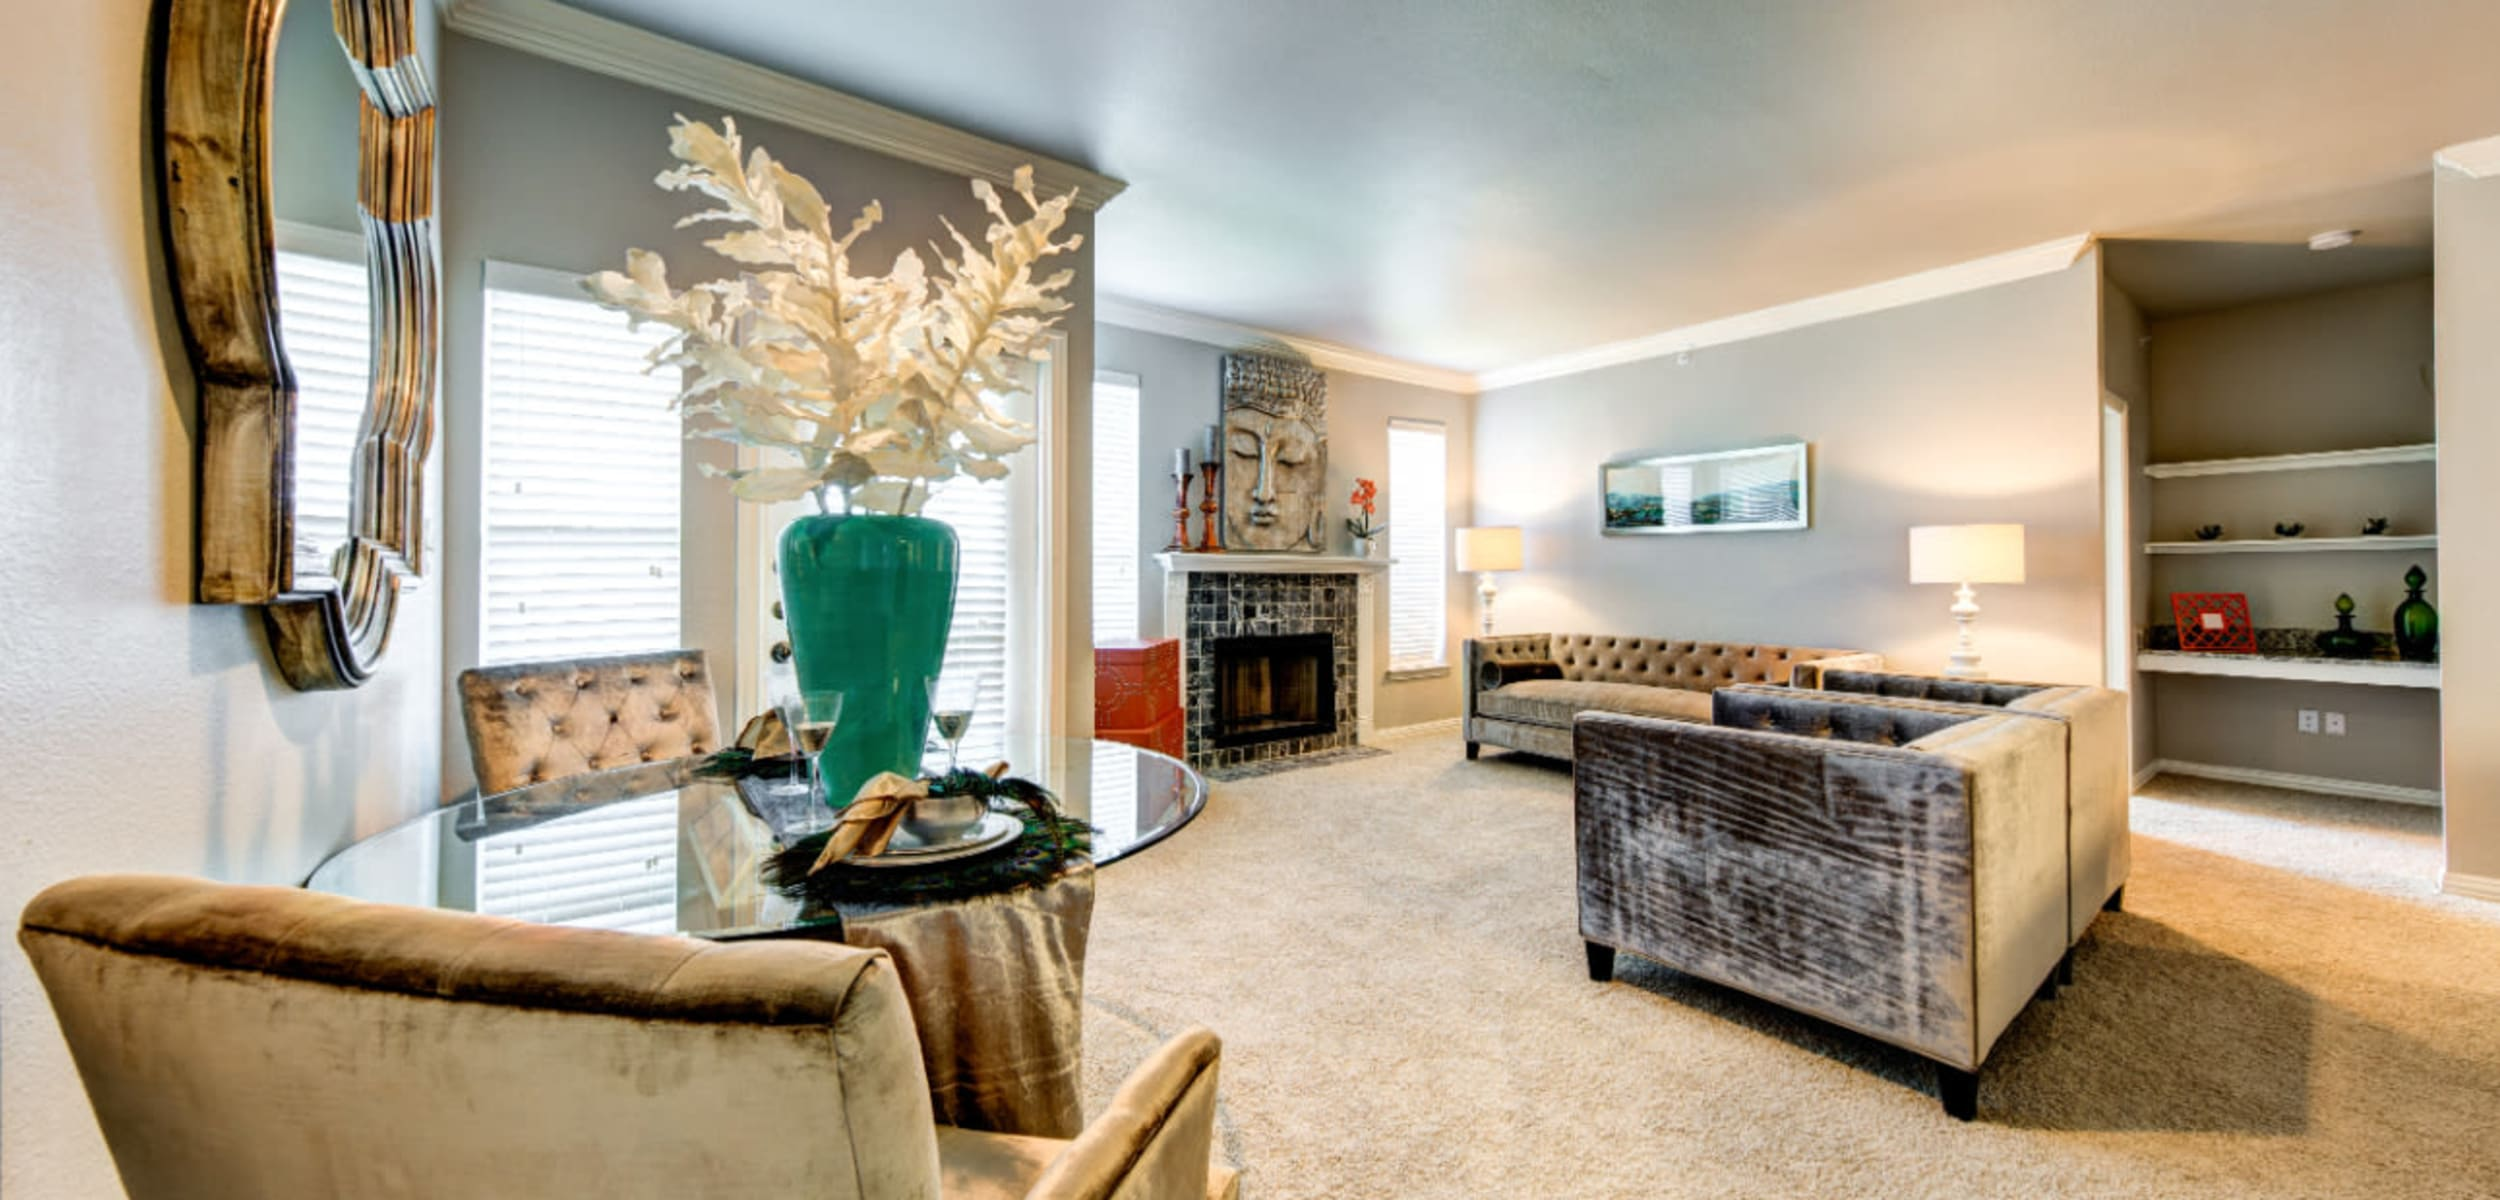 Modern style living room with sitting chairs, dining area, and built-in shelves at Marquis at Silver Oaks in Grapevine, Texas